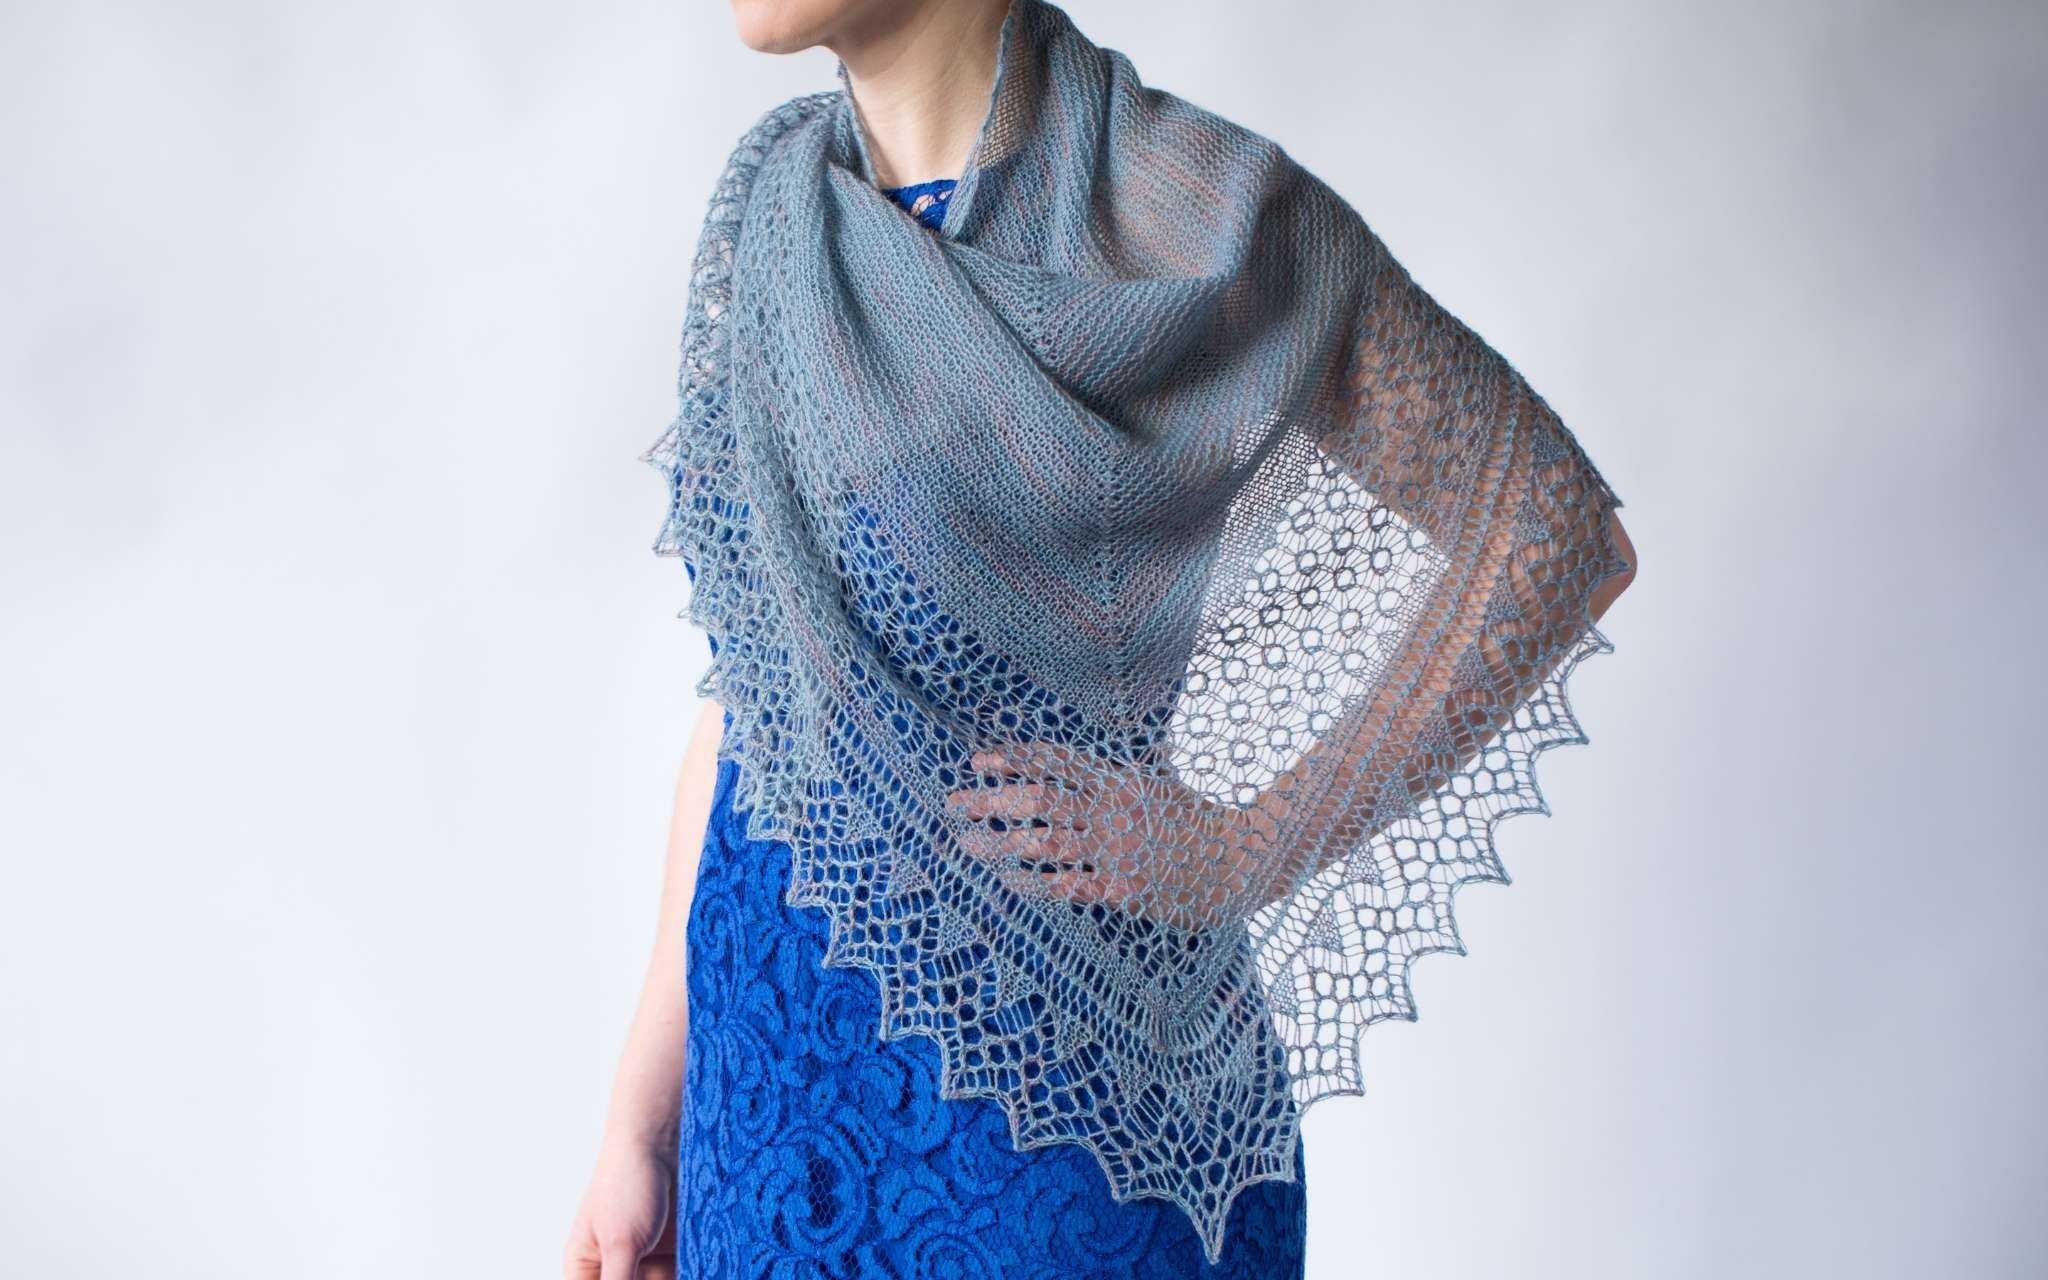 A close up of a delicate pale grey shawl, worn by a model wearing a blue dress. The model's head is not visible, but they are standing in front of a white background with their left hand resting on their hip.